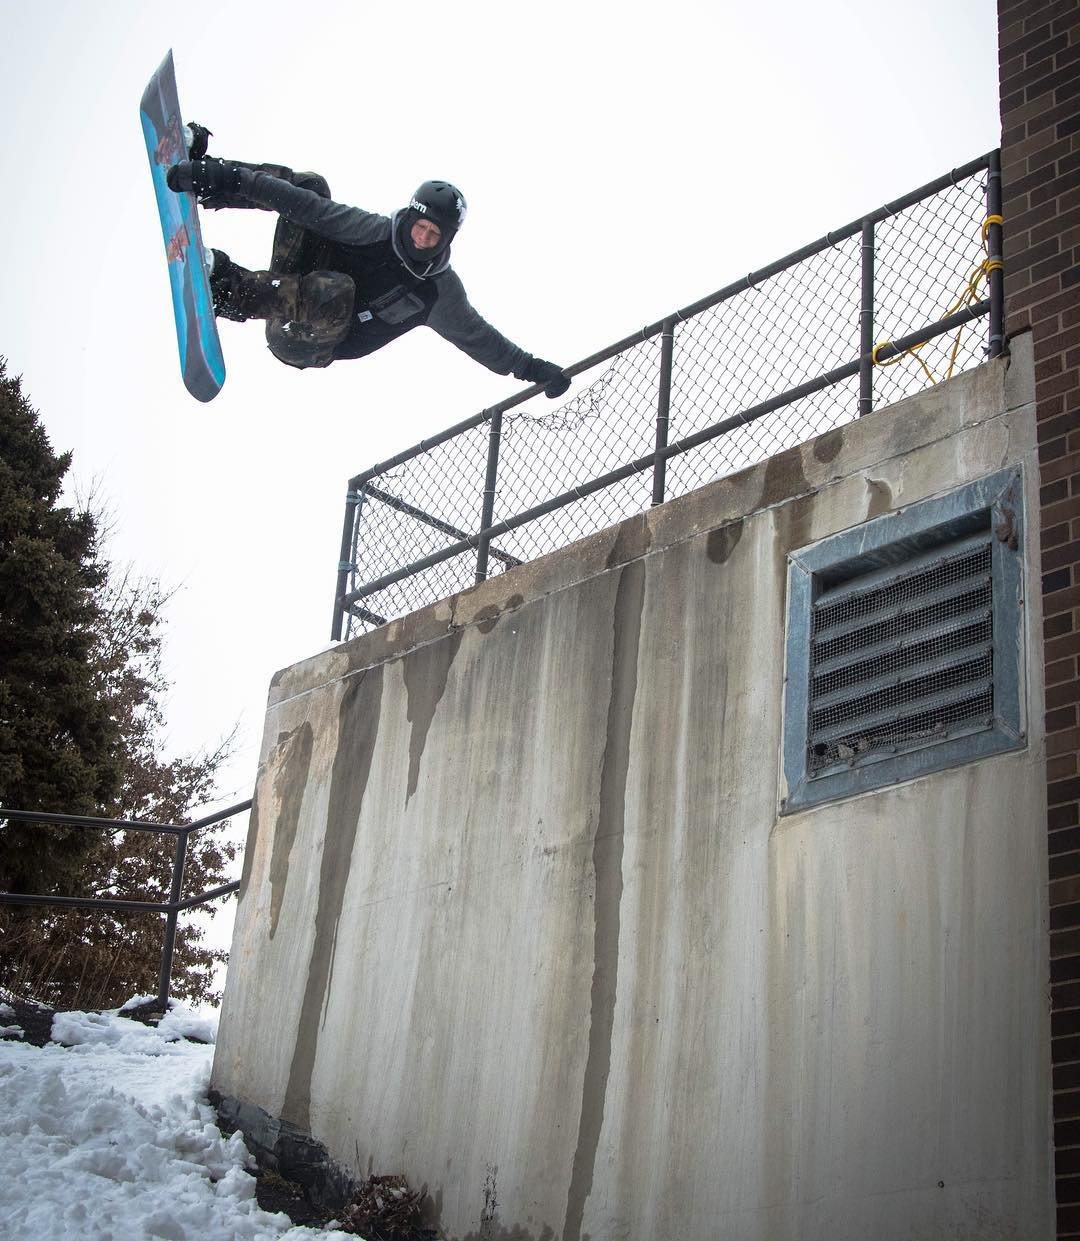 Minnesota shredder Casey Pflipsen aka @azizipflipsen hopping fences!